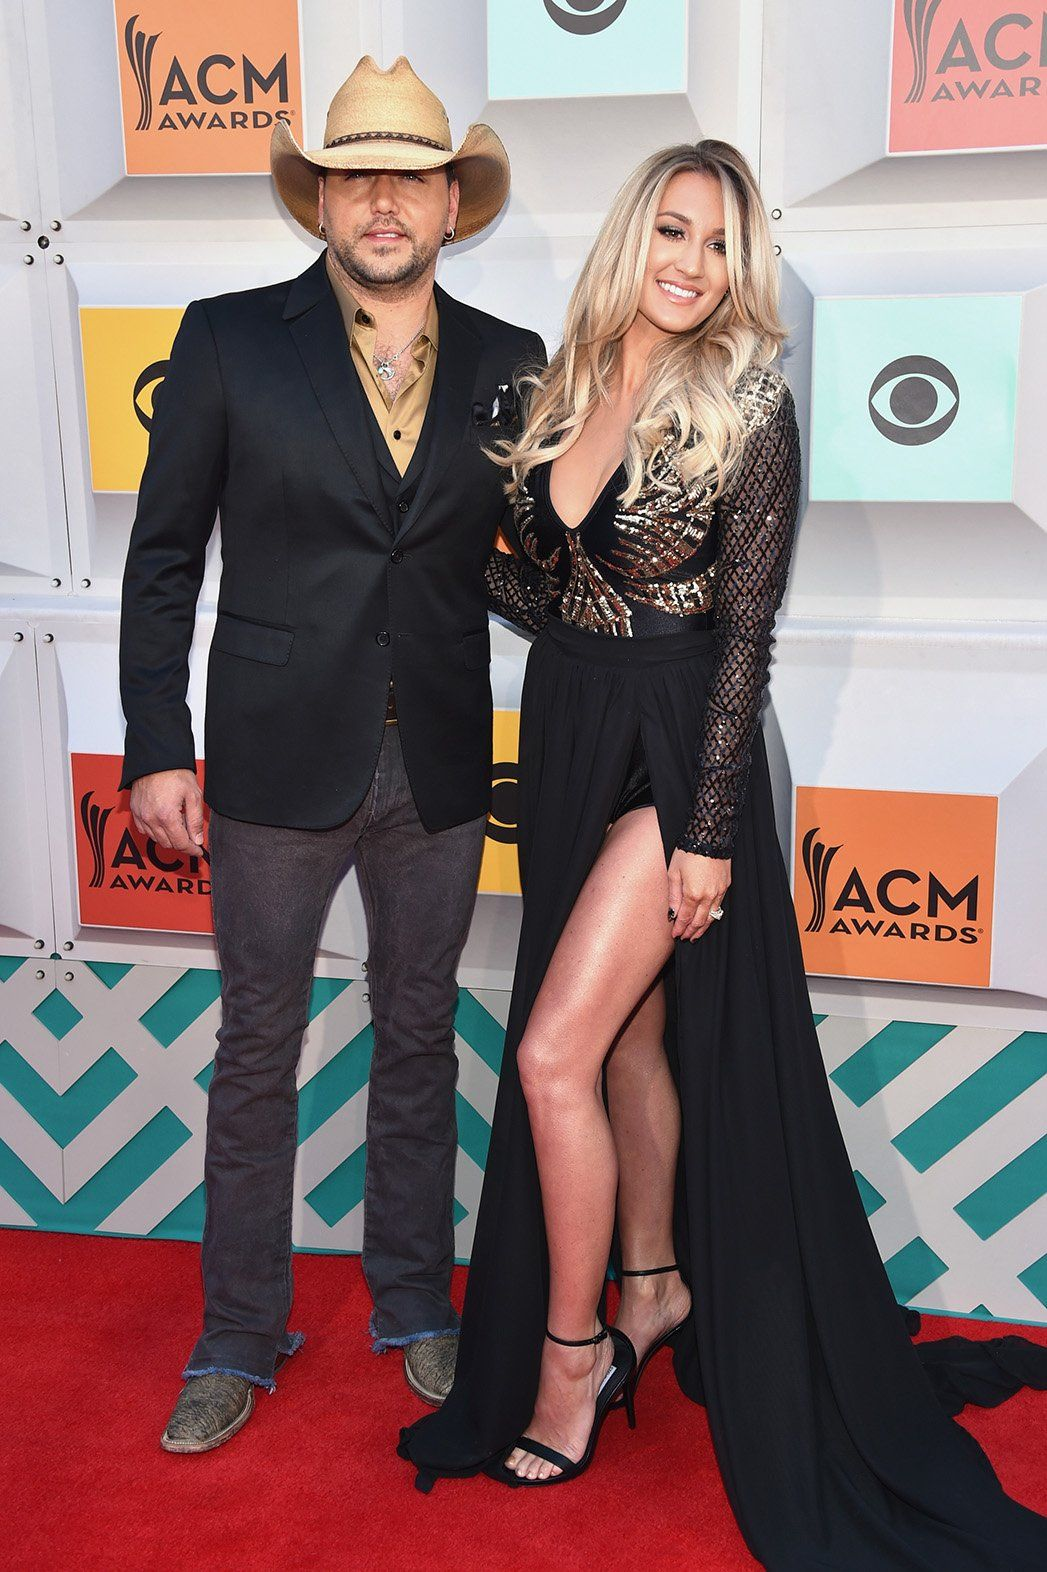 ACM Awards Red Carpet Photos (With images) Jason aldean